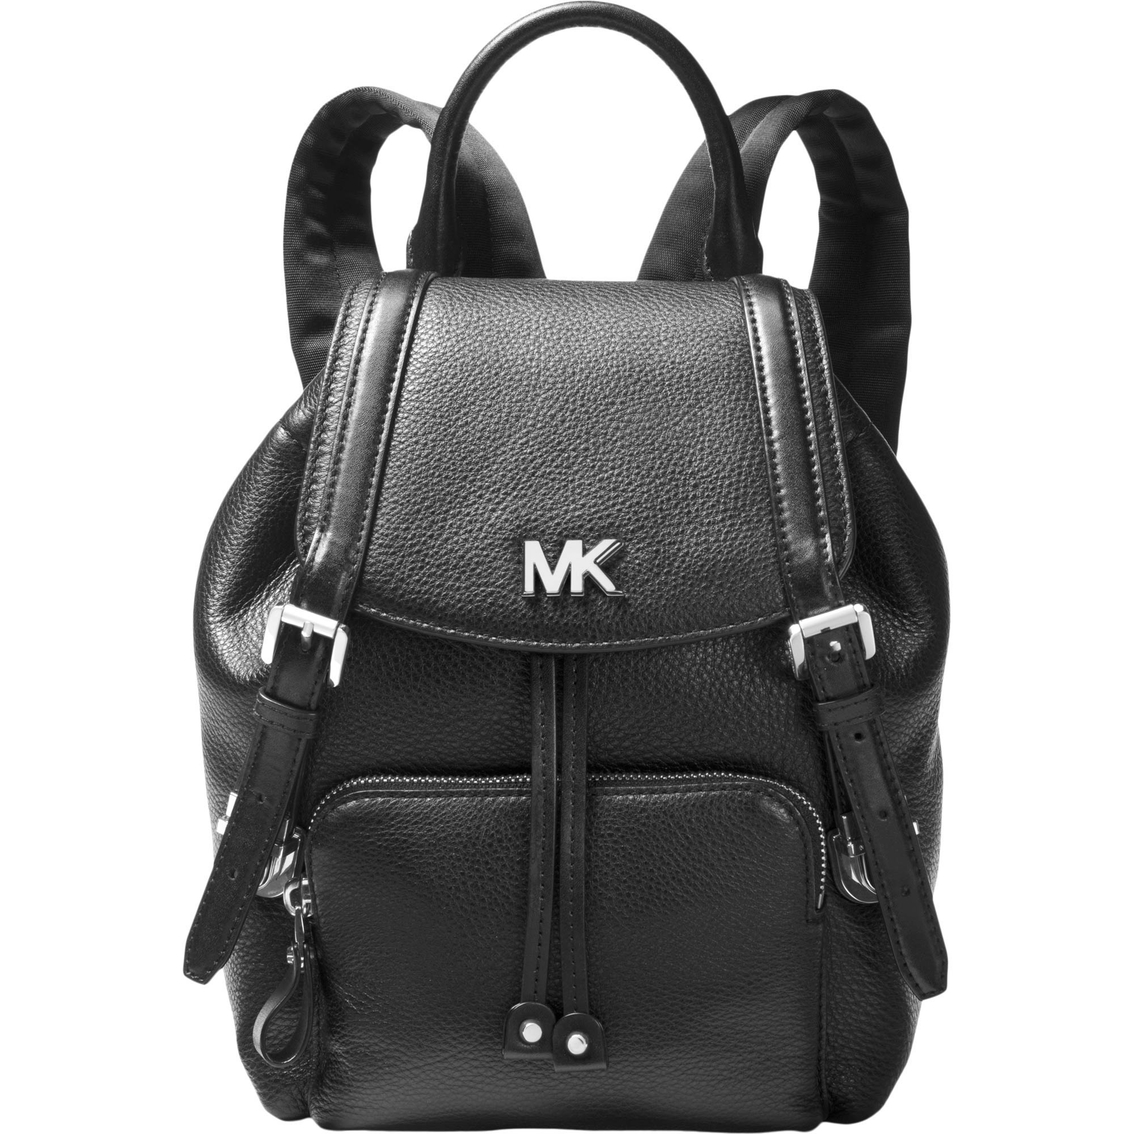 c4915b7f2f9a Michael Kors Beacon Leather Small Backpack | Backpacks | More | Shop ...